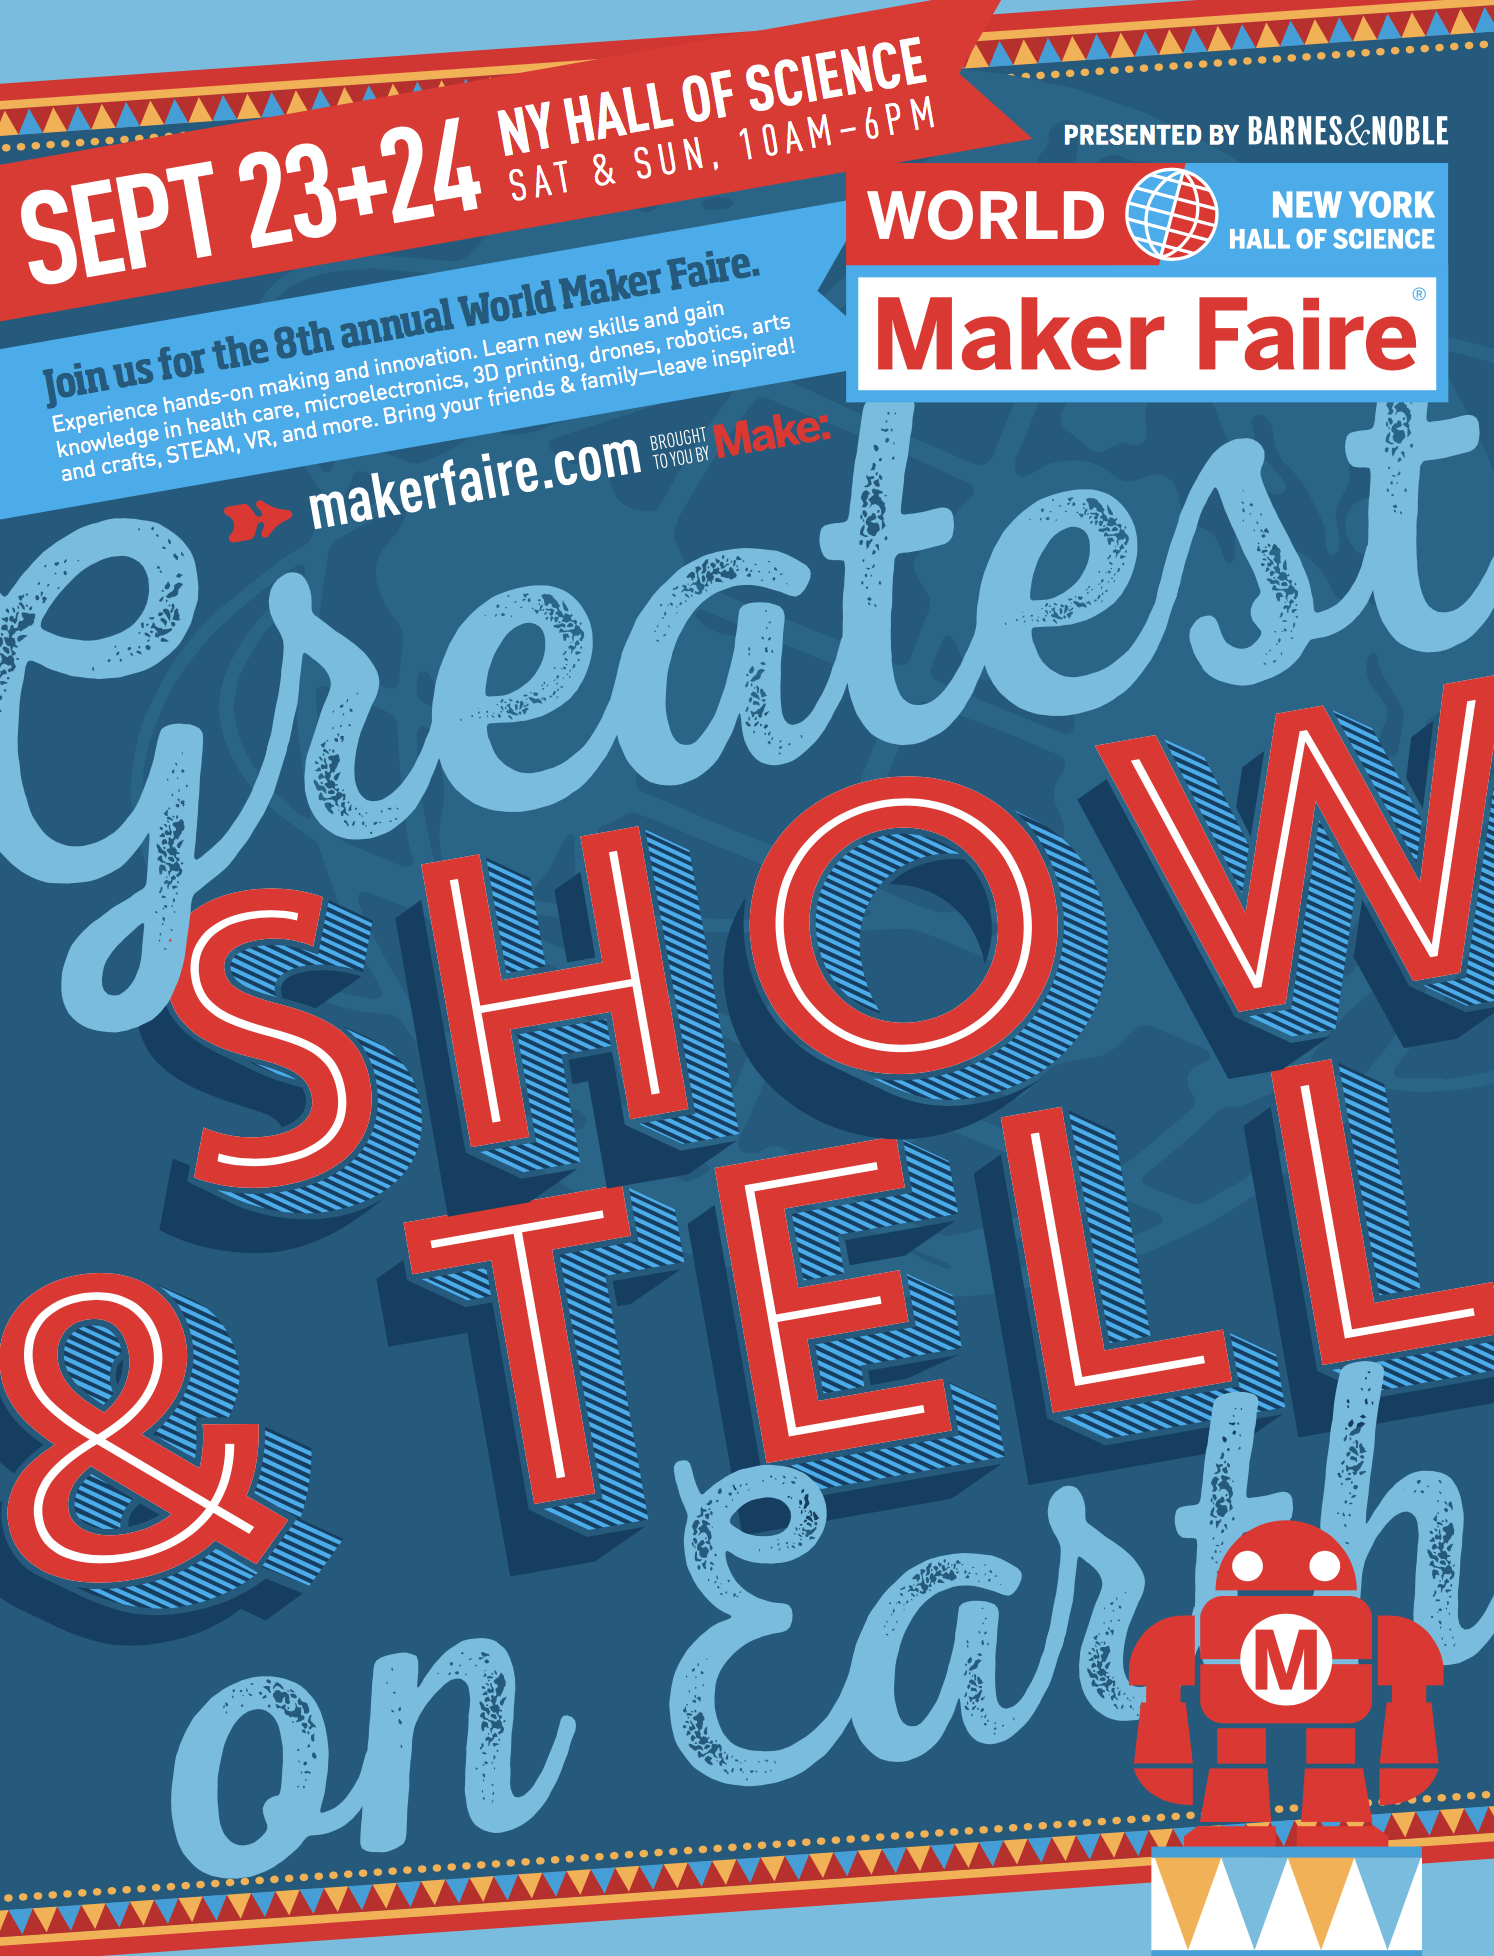 World Maker Faire is back in New York City and you won't believe what I saw! Come check it out at #NYSCI - #STEM, #STEAM, #Maker